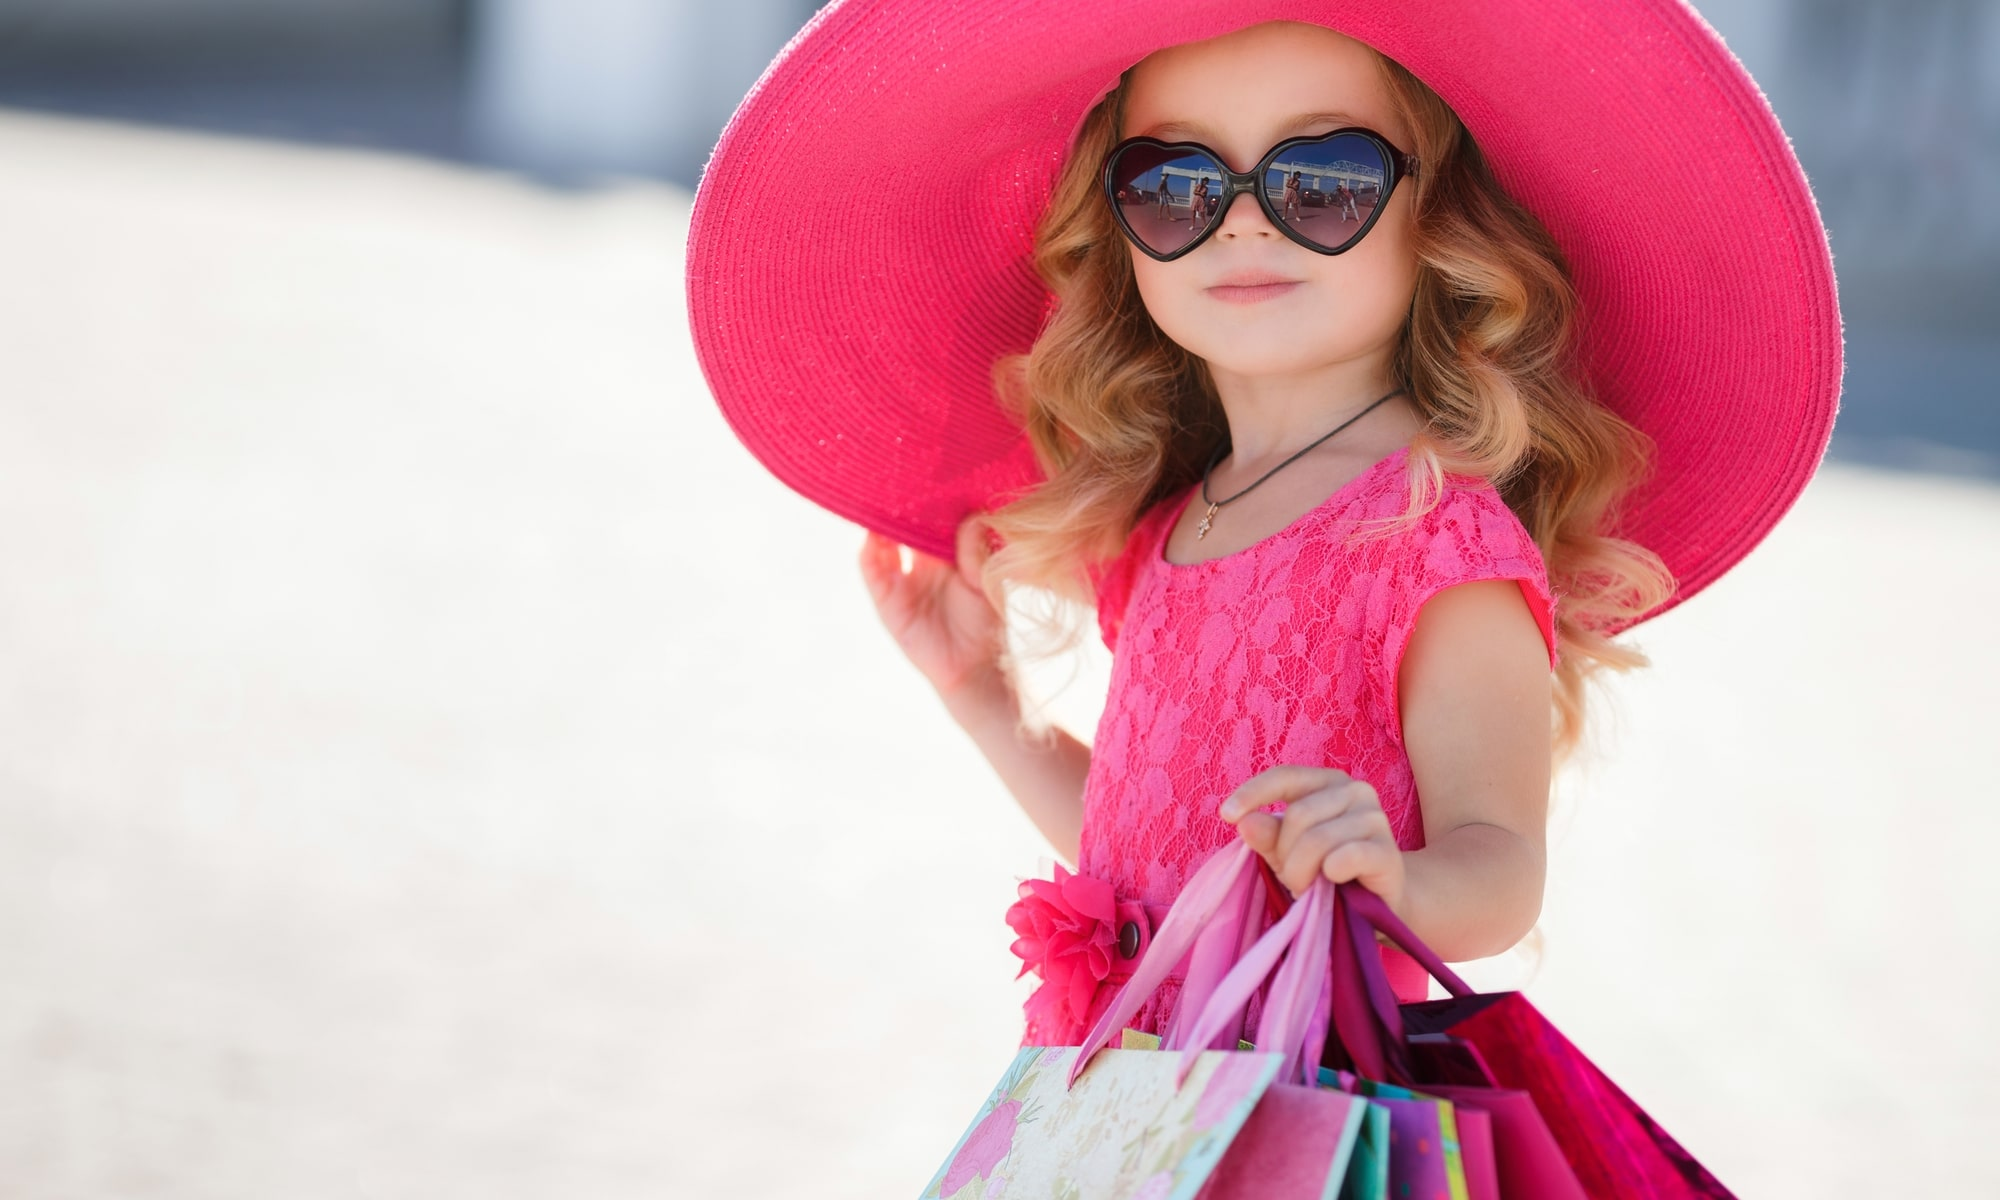 Buy The Best Spanish Baby Dresses With Us Free Shop line